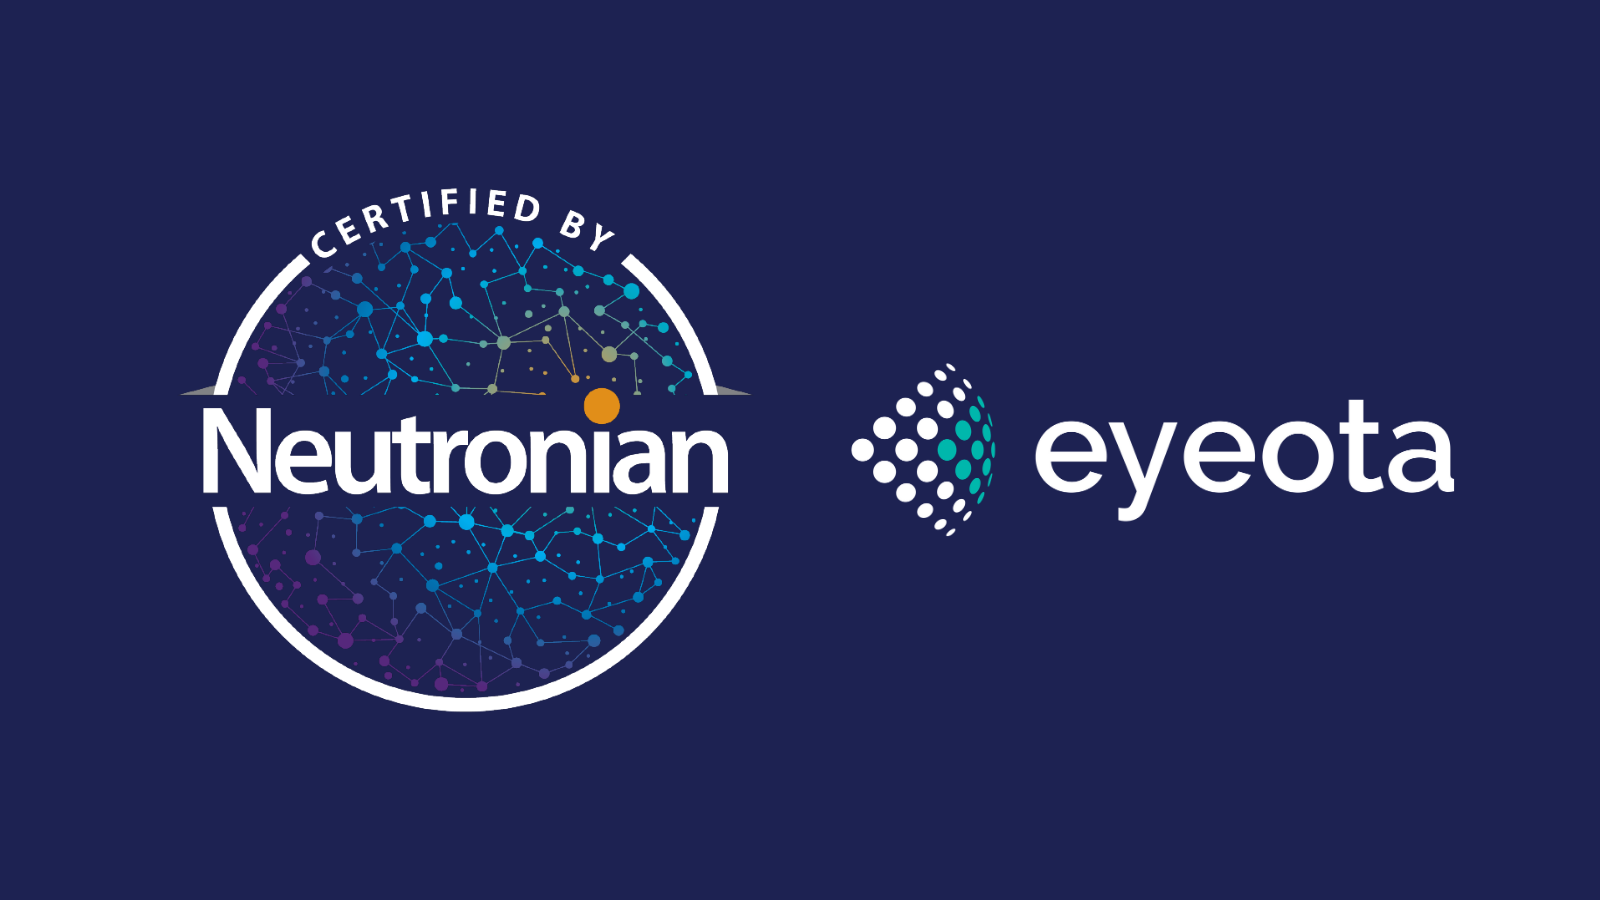 Neutronian and Eyeota Data Quality Certification Initiative